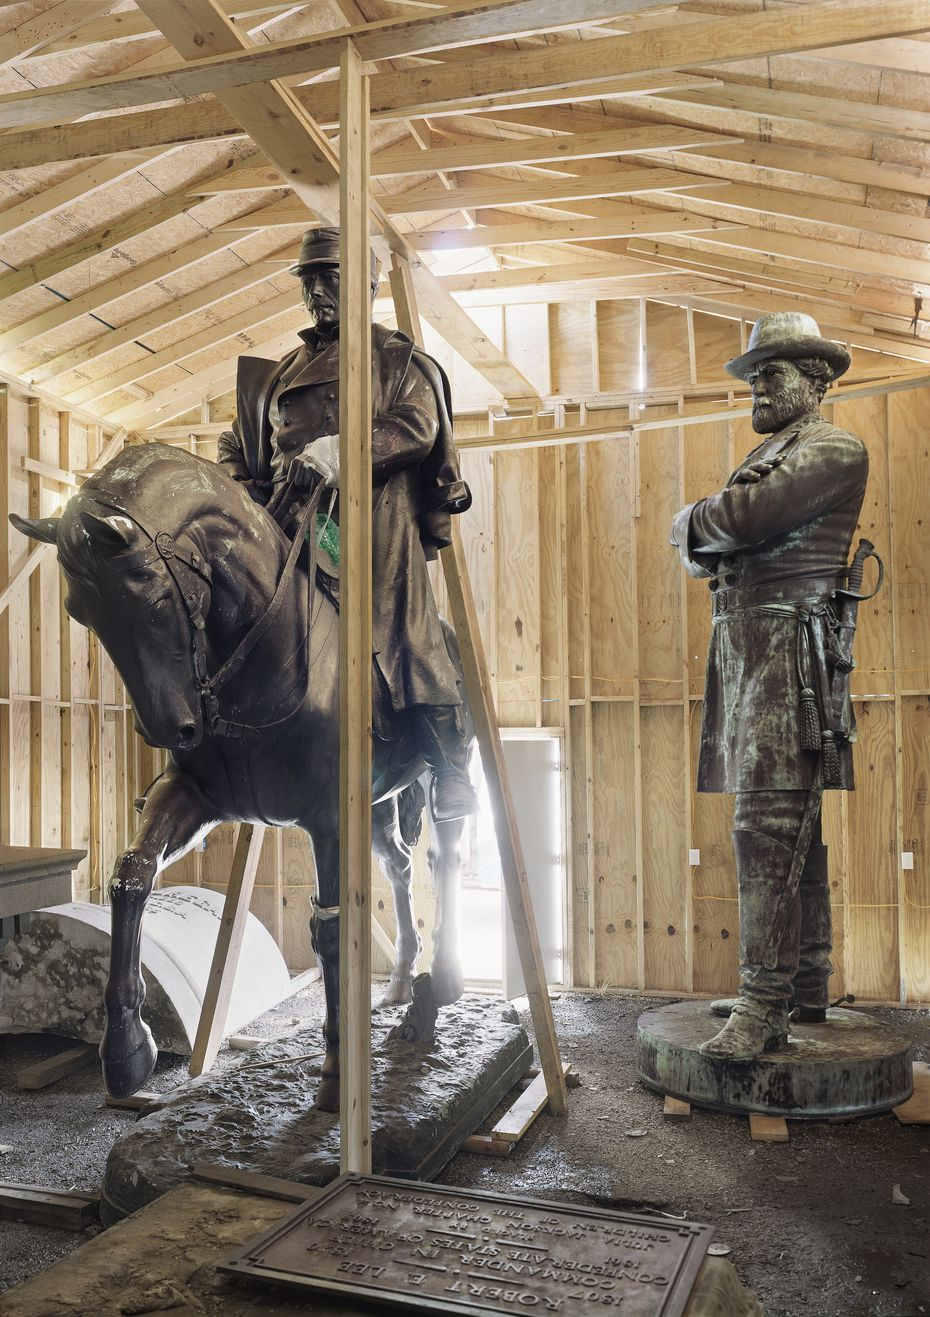 """An-My Lê's 2017 photo """"Fragment VI: General Robert E. Lee and P. G. T. Beauregard Monuments, Homeland Security Storage, New Orleans"""" is part of her """"Silent General"""" series. She began the series after the racially motivated 2015 mass shooting at Emanuel African Methodist Episcopal Church in Charleston, S.C. (© An-My Lê. Courtesy of the artist and Marian Goodman Gallery, New York, Paris and London)"""